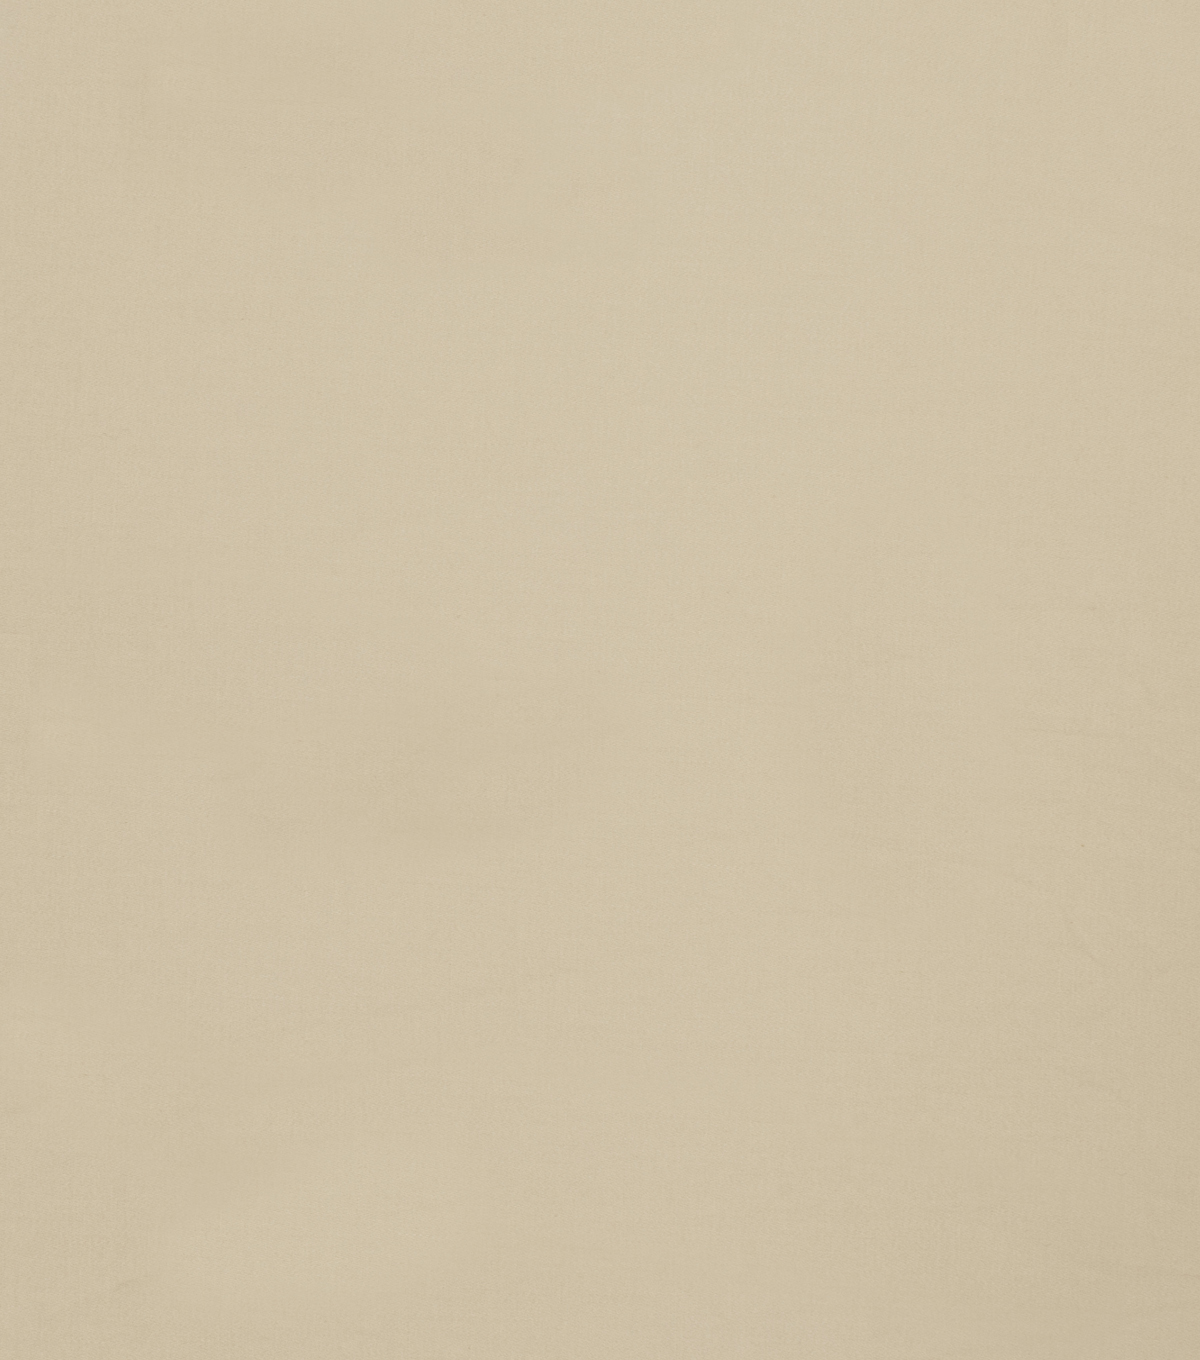 Home Decor 8x8 Fabric Swatch-Eaton Square Bandora Vanilla